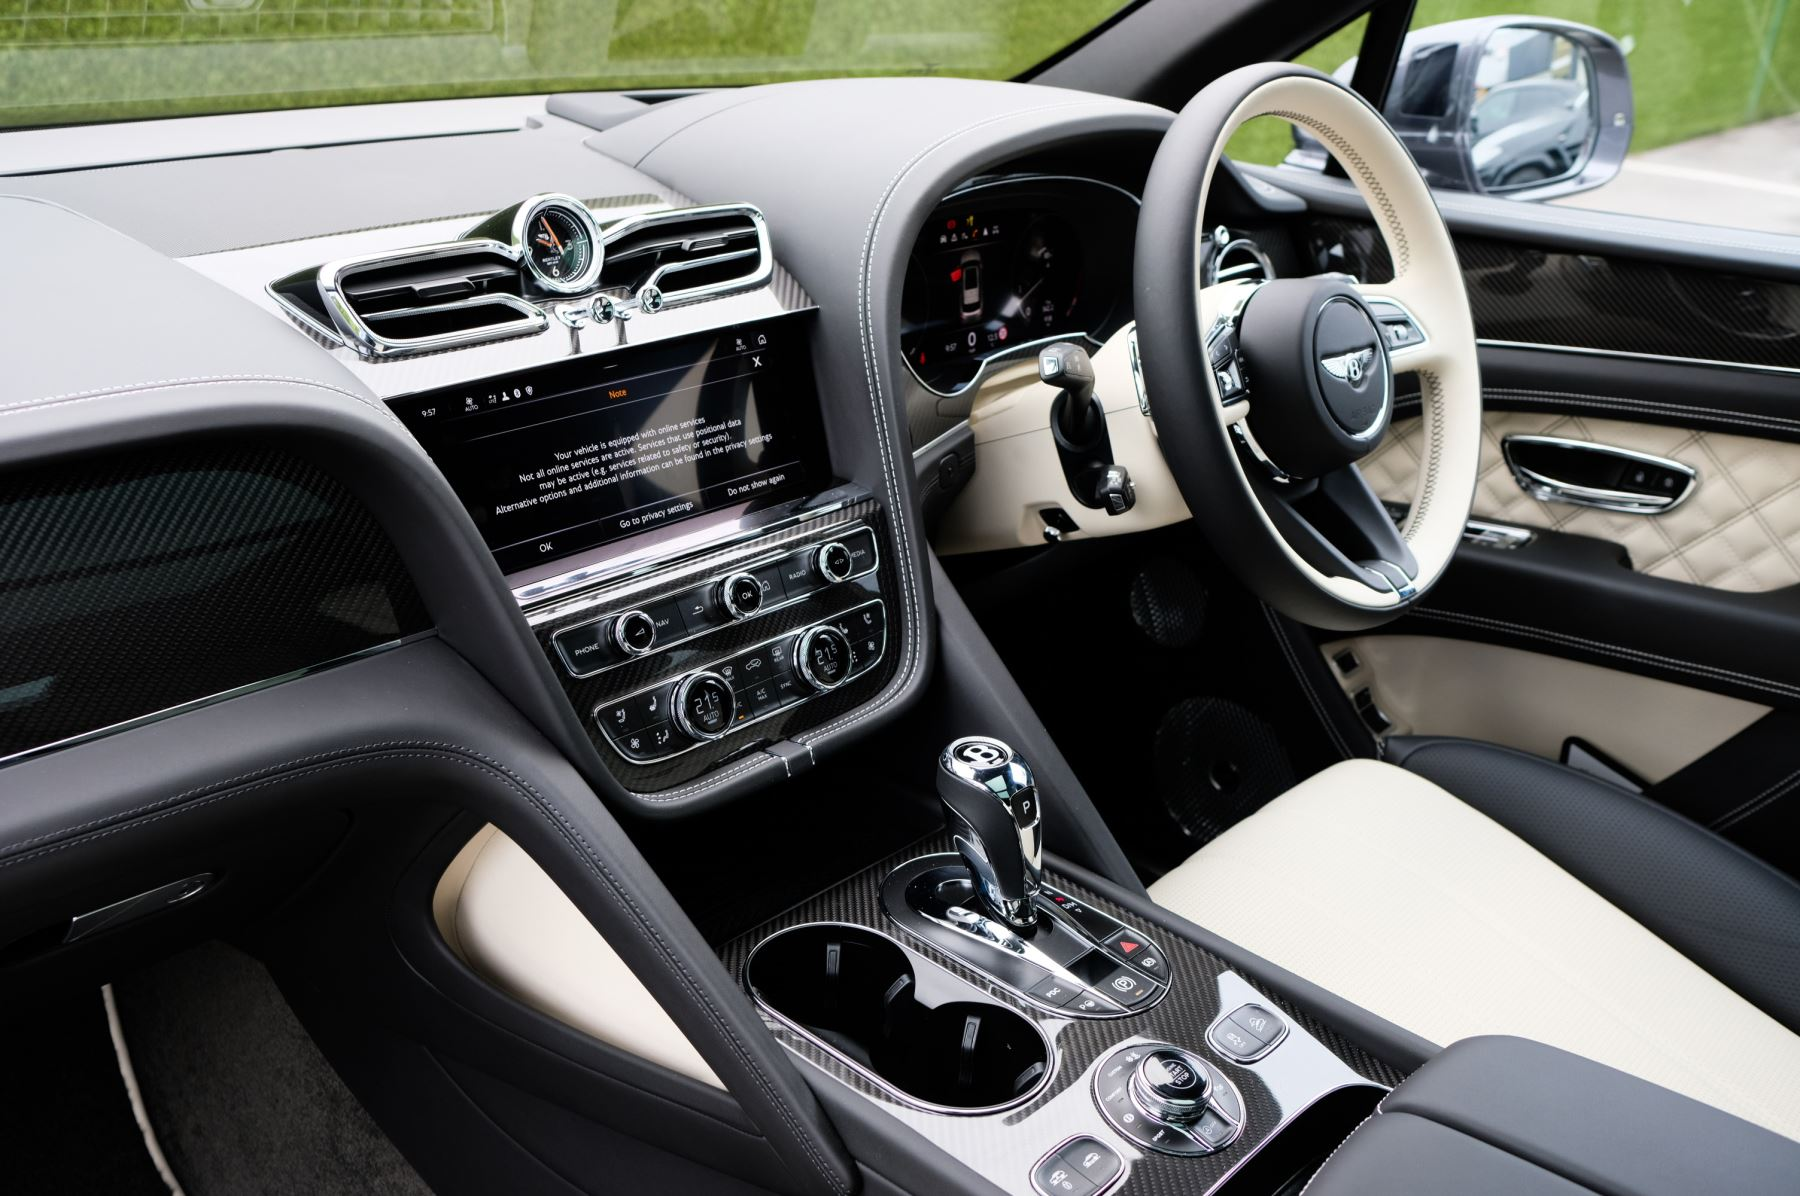 Bentley Bentayga 4.0 V8 5dr [4 Seat] - First Edition - All Terrain Specification image 13